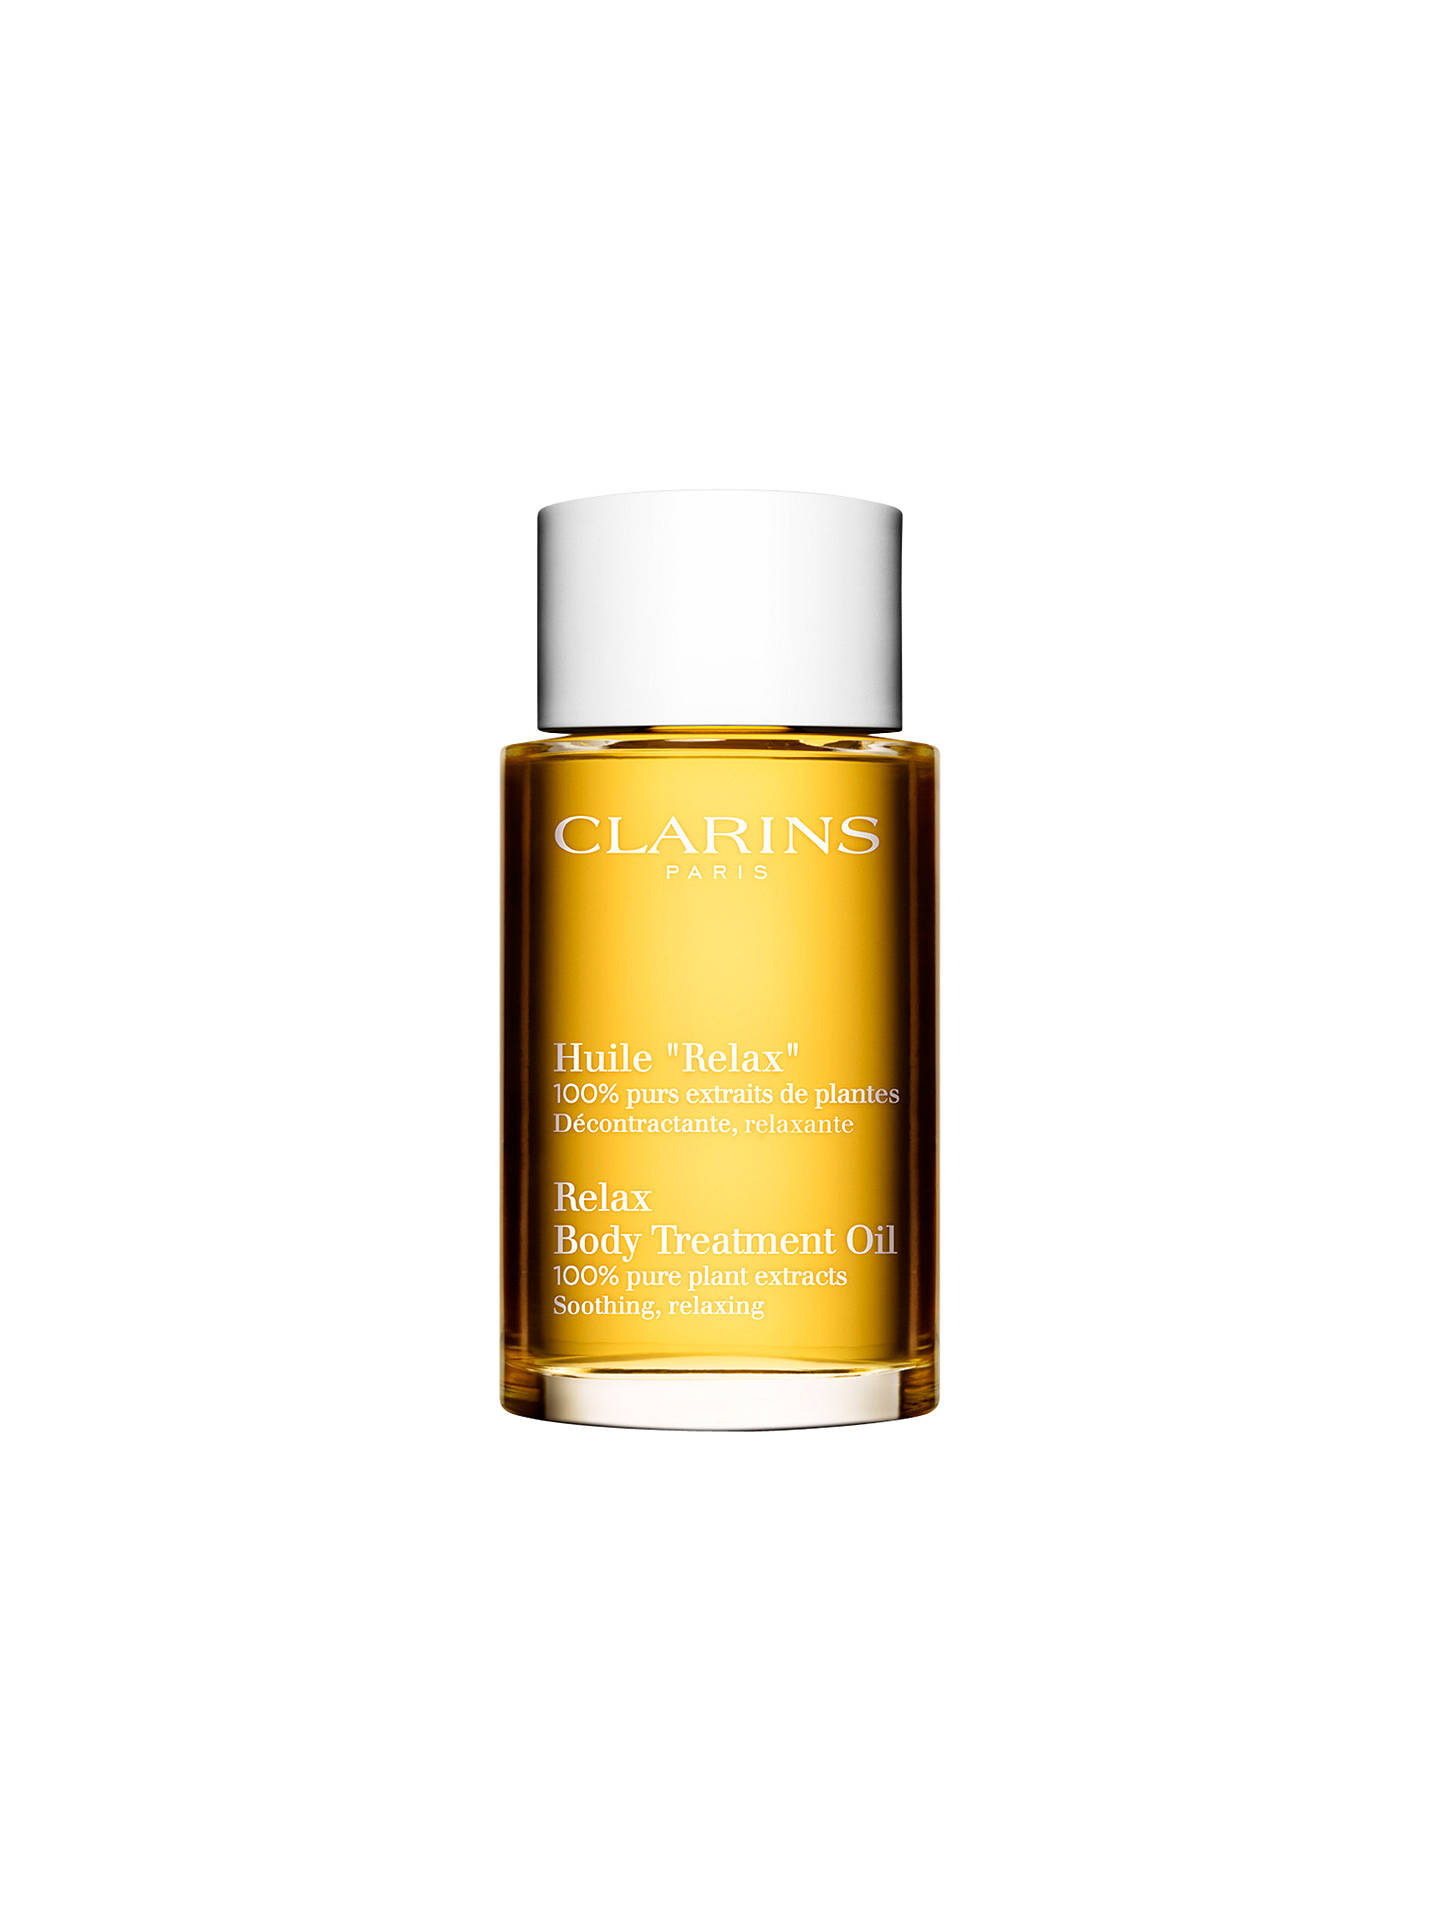 Buy Clarins Relax Body Treatment Oil - Soothing/Relaxing, 100ml Online at johnlewis.com